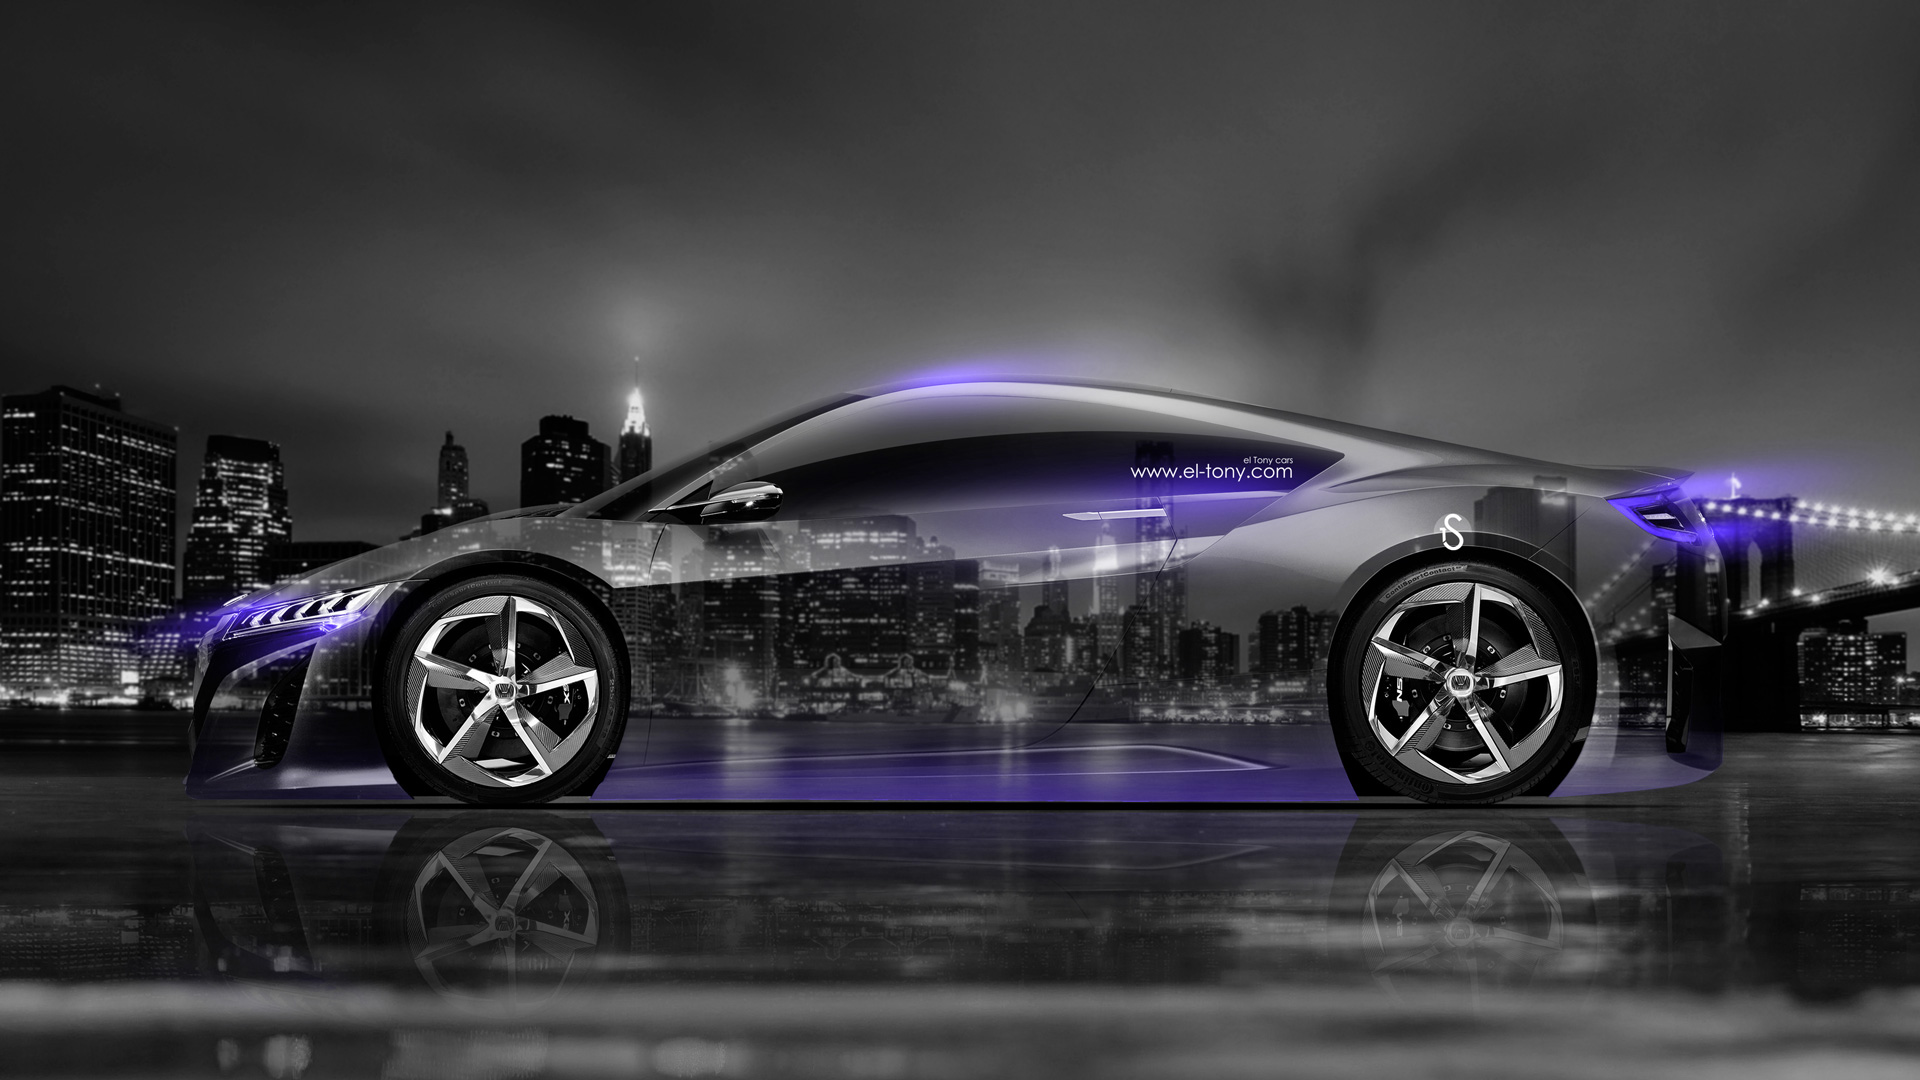 Honda NSX Side Crystal City Car 2014 Violet